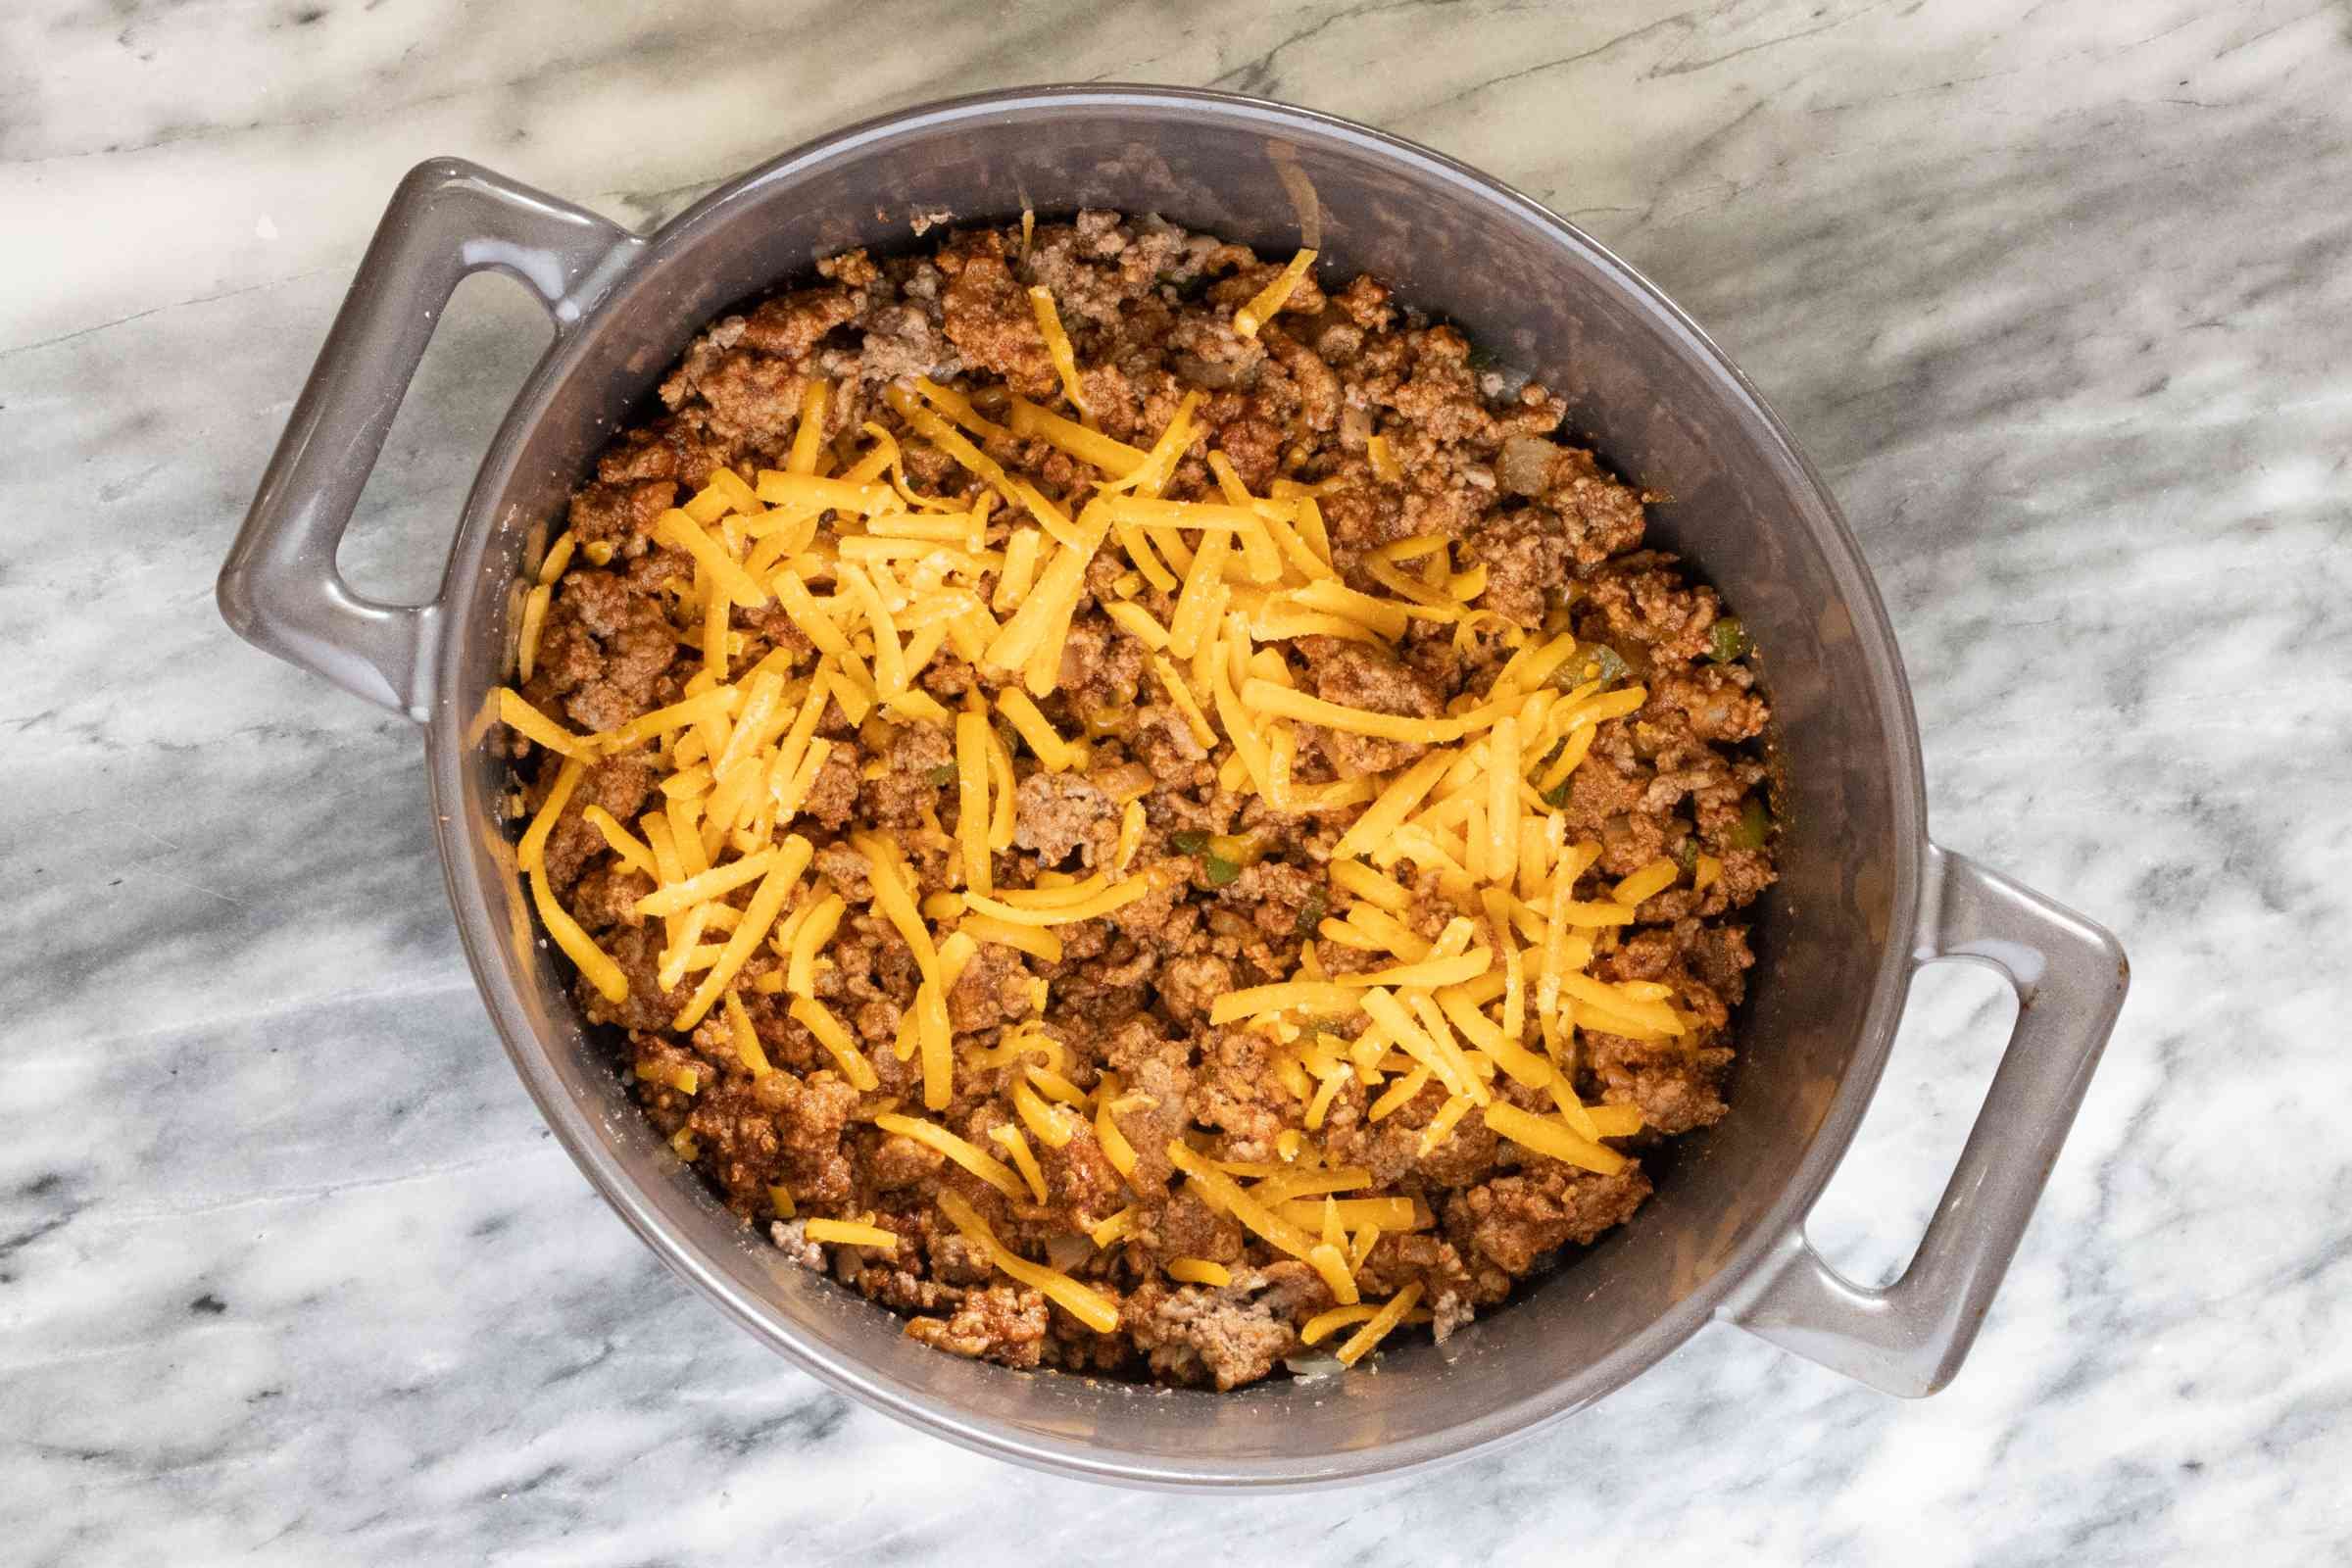 Layering the low carb taco casserole.